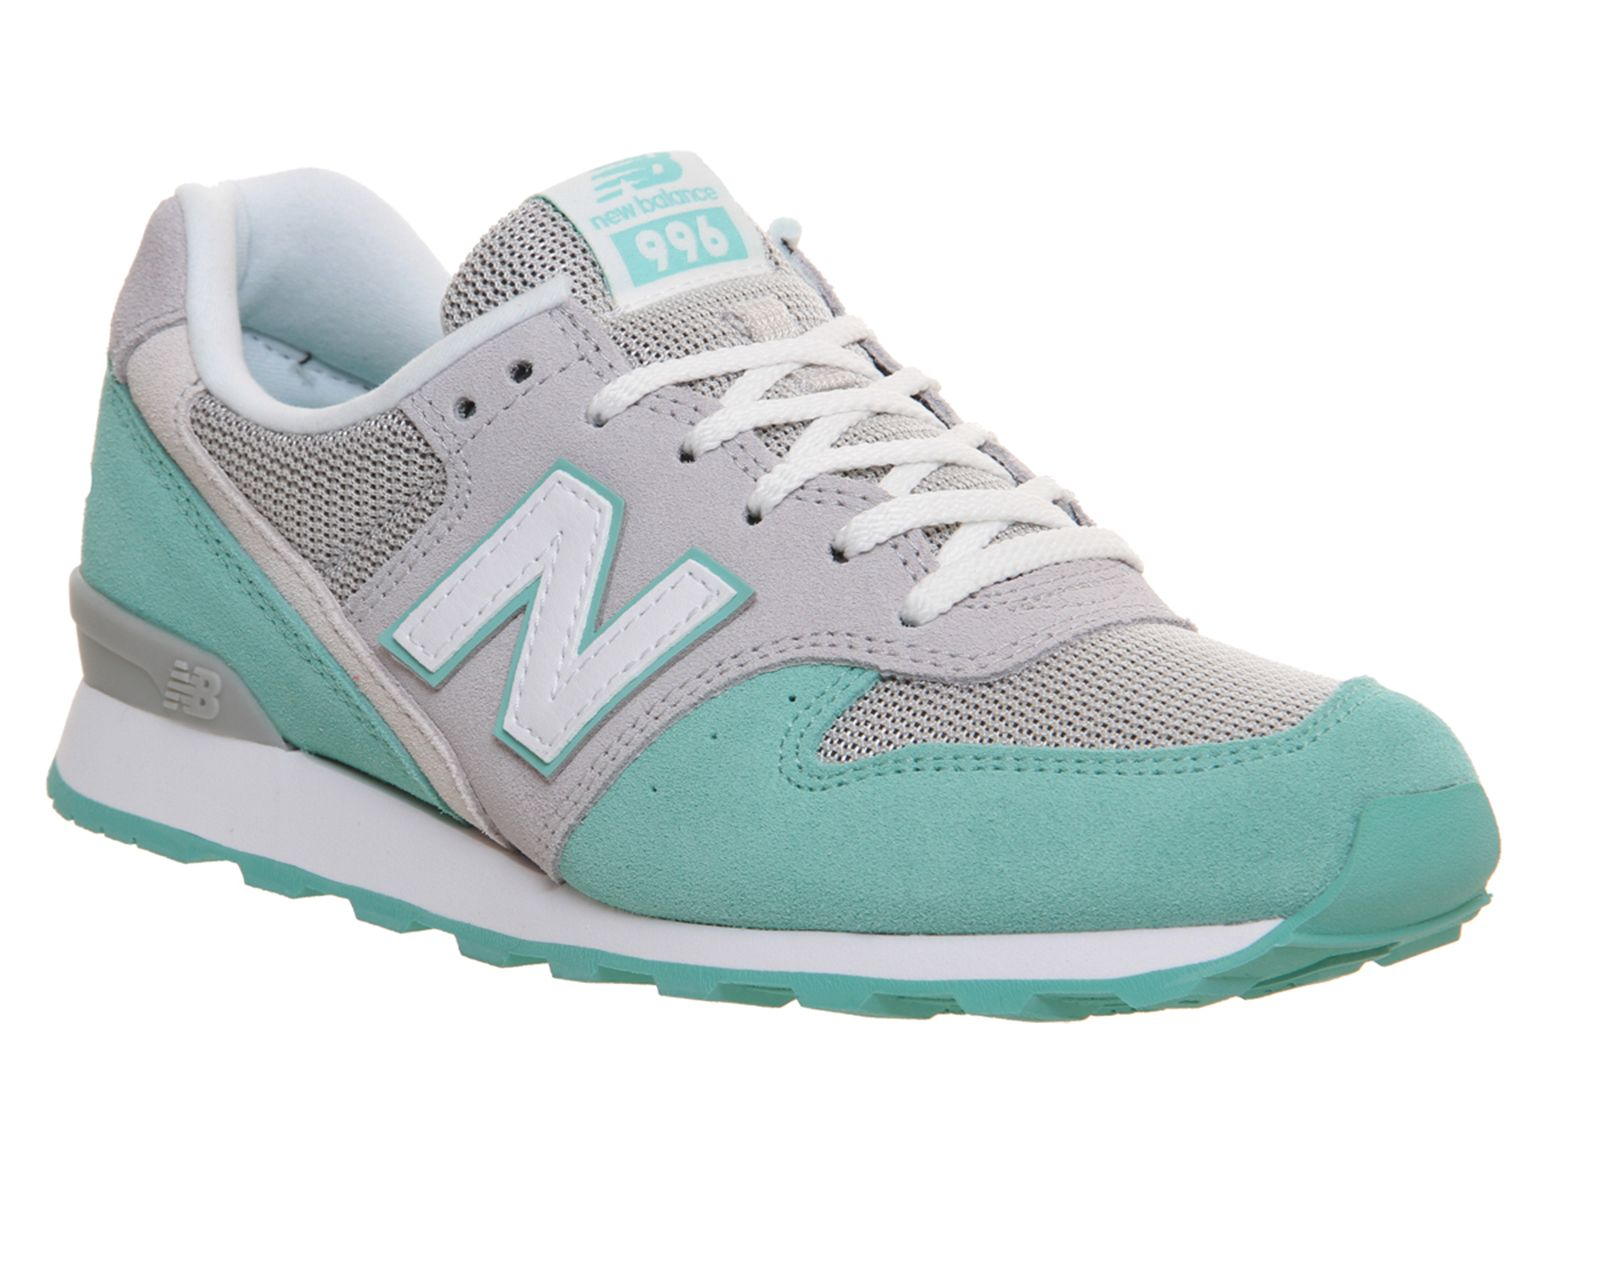 the best attitude c3d2d 8dd87 New Balance Wr996 Grey Mint Green - Hers trainers | Shoes ...